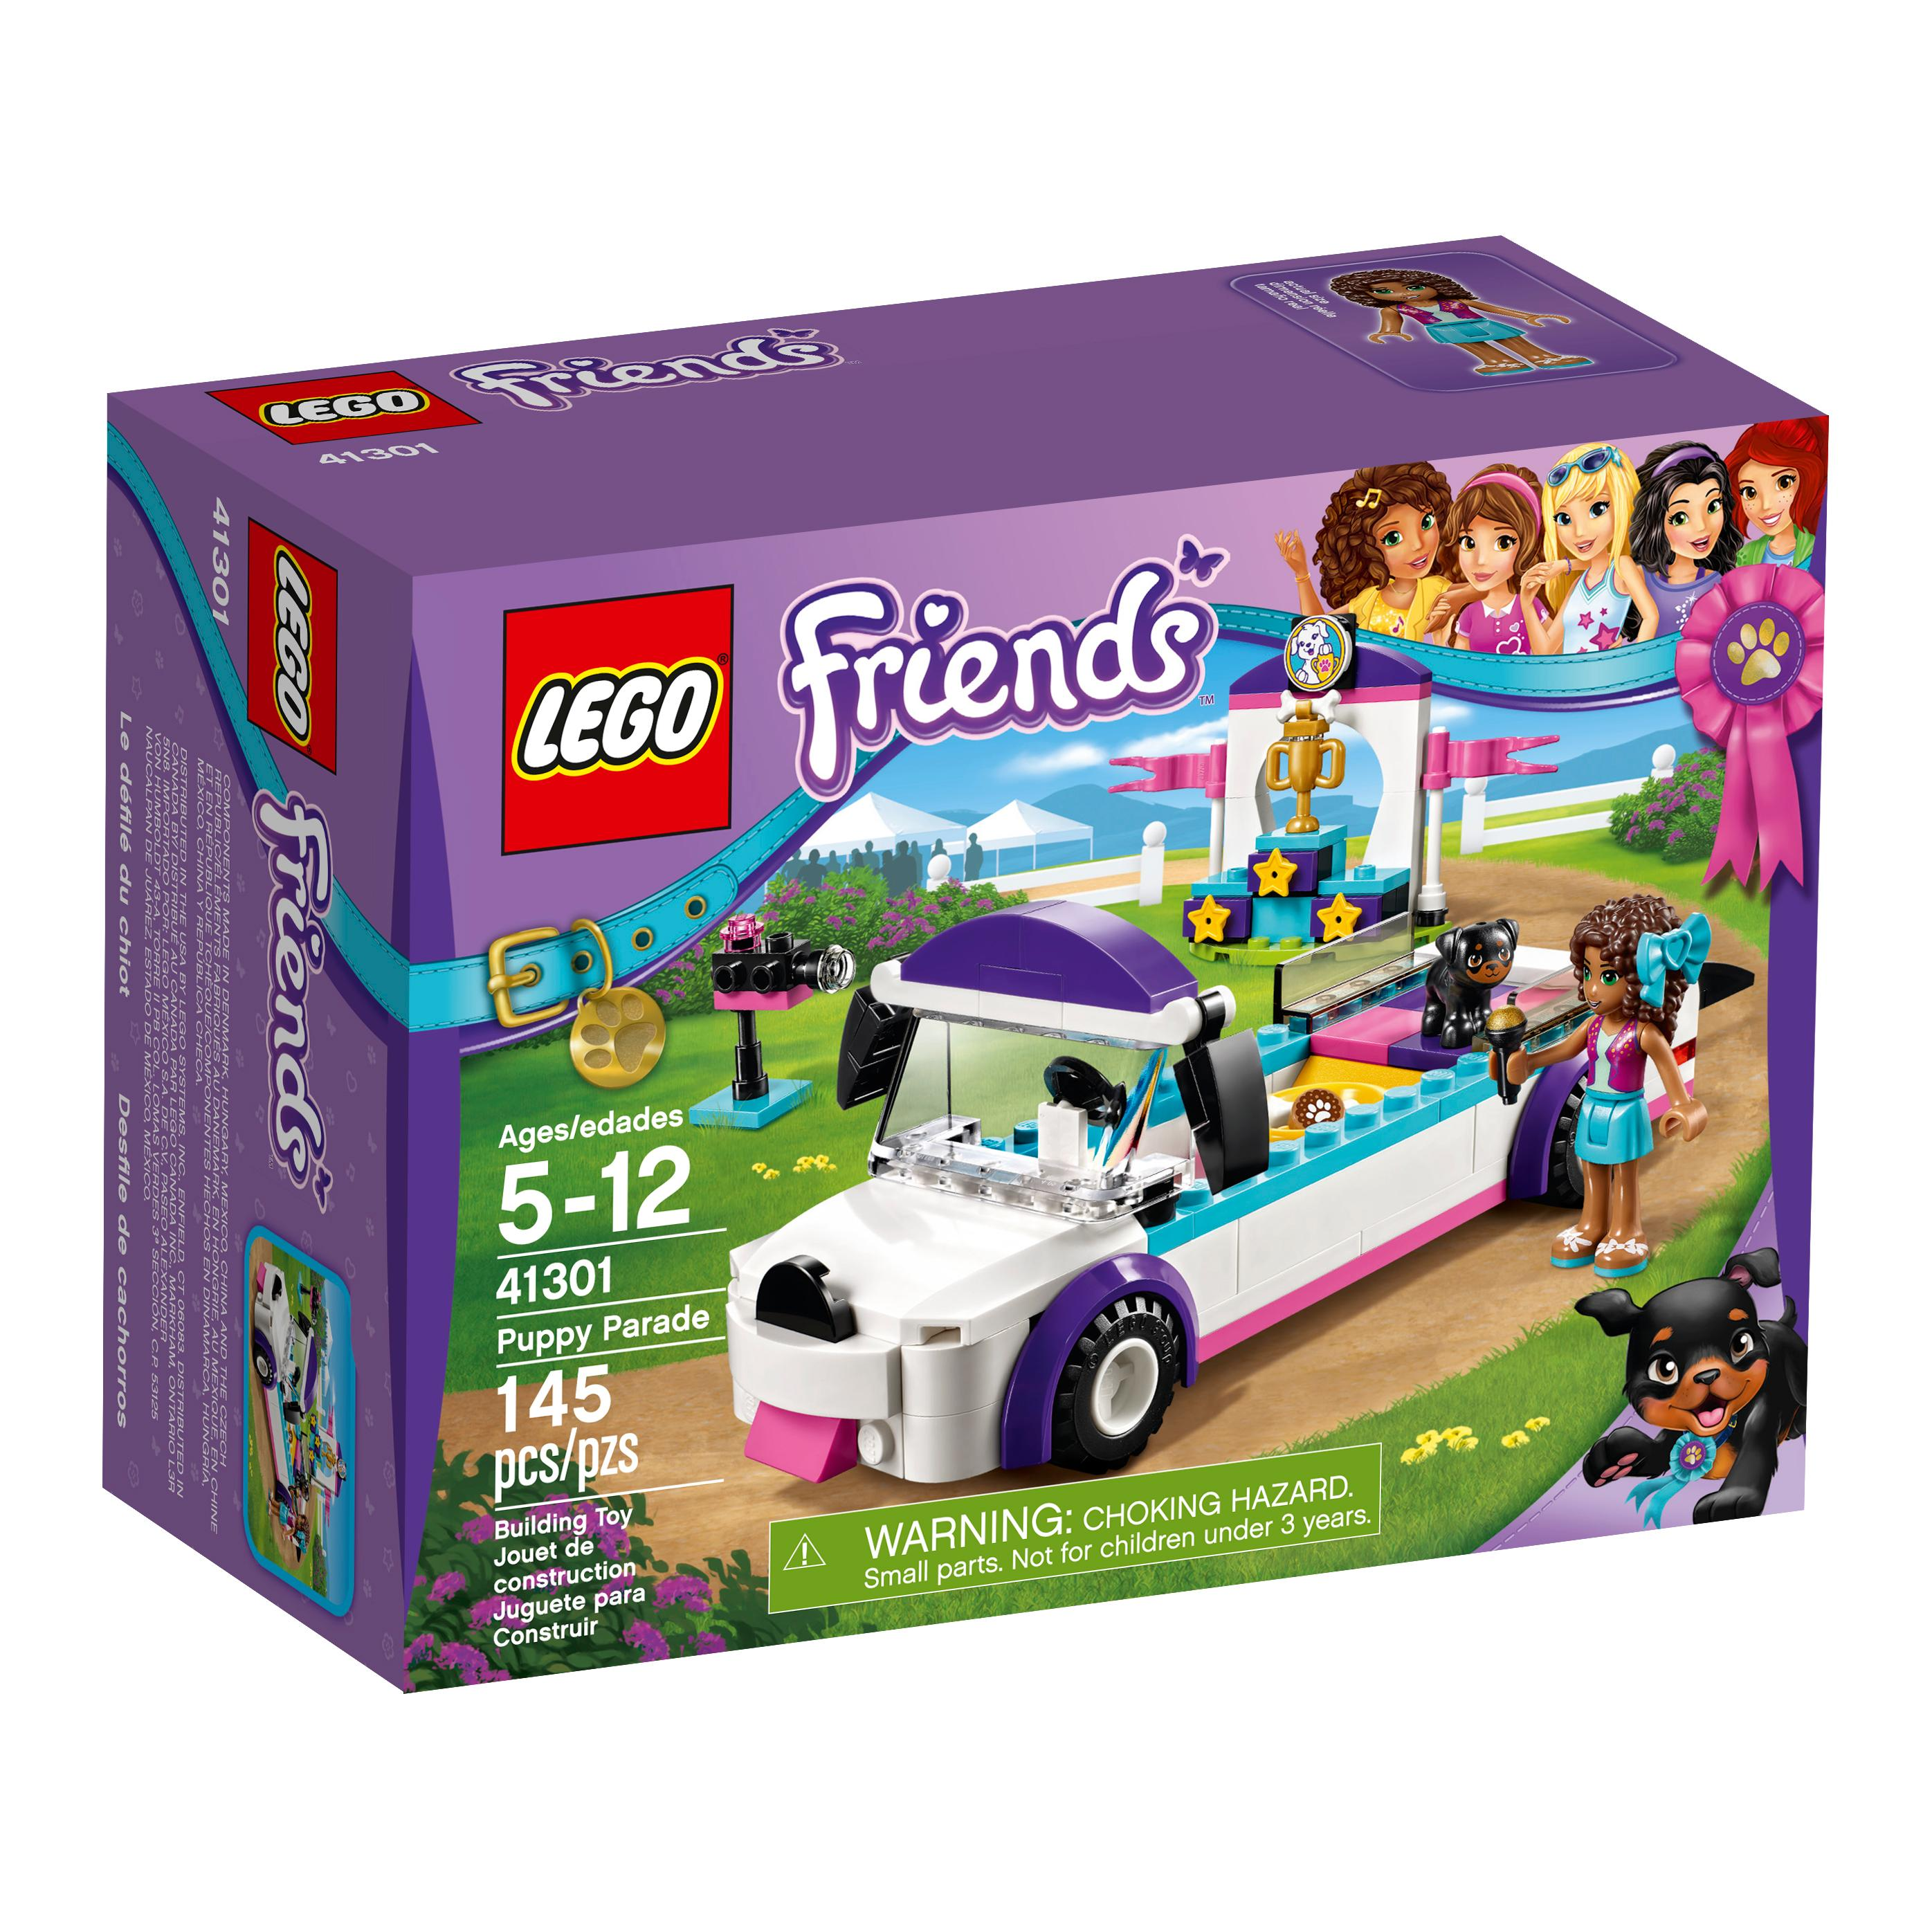 Toys For Friends : Amazon lego friends puppy parade building kit